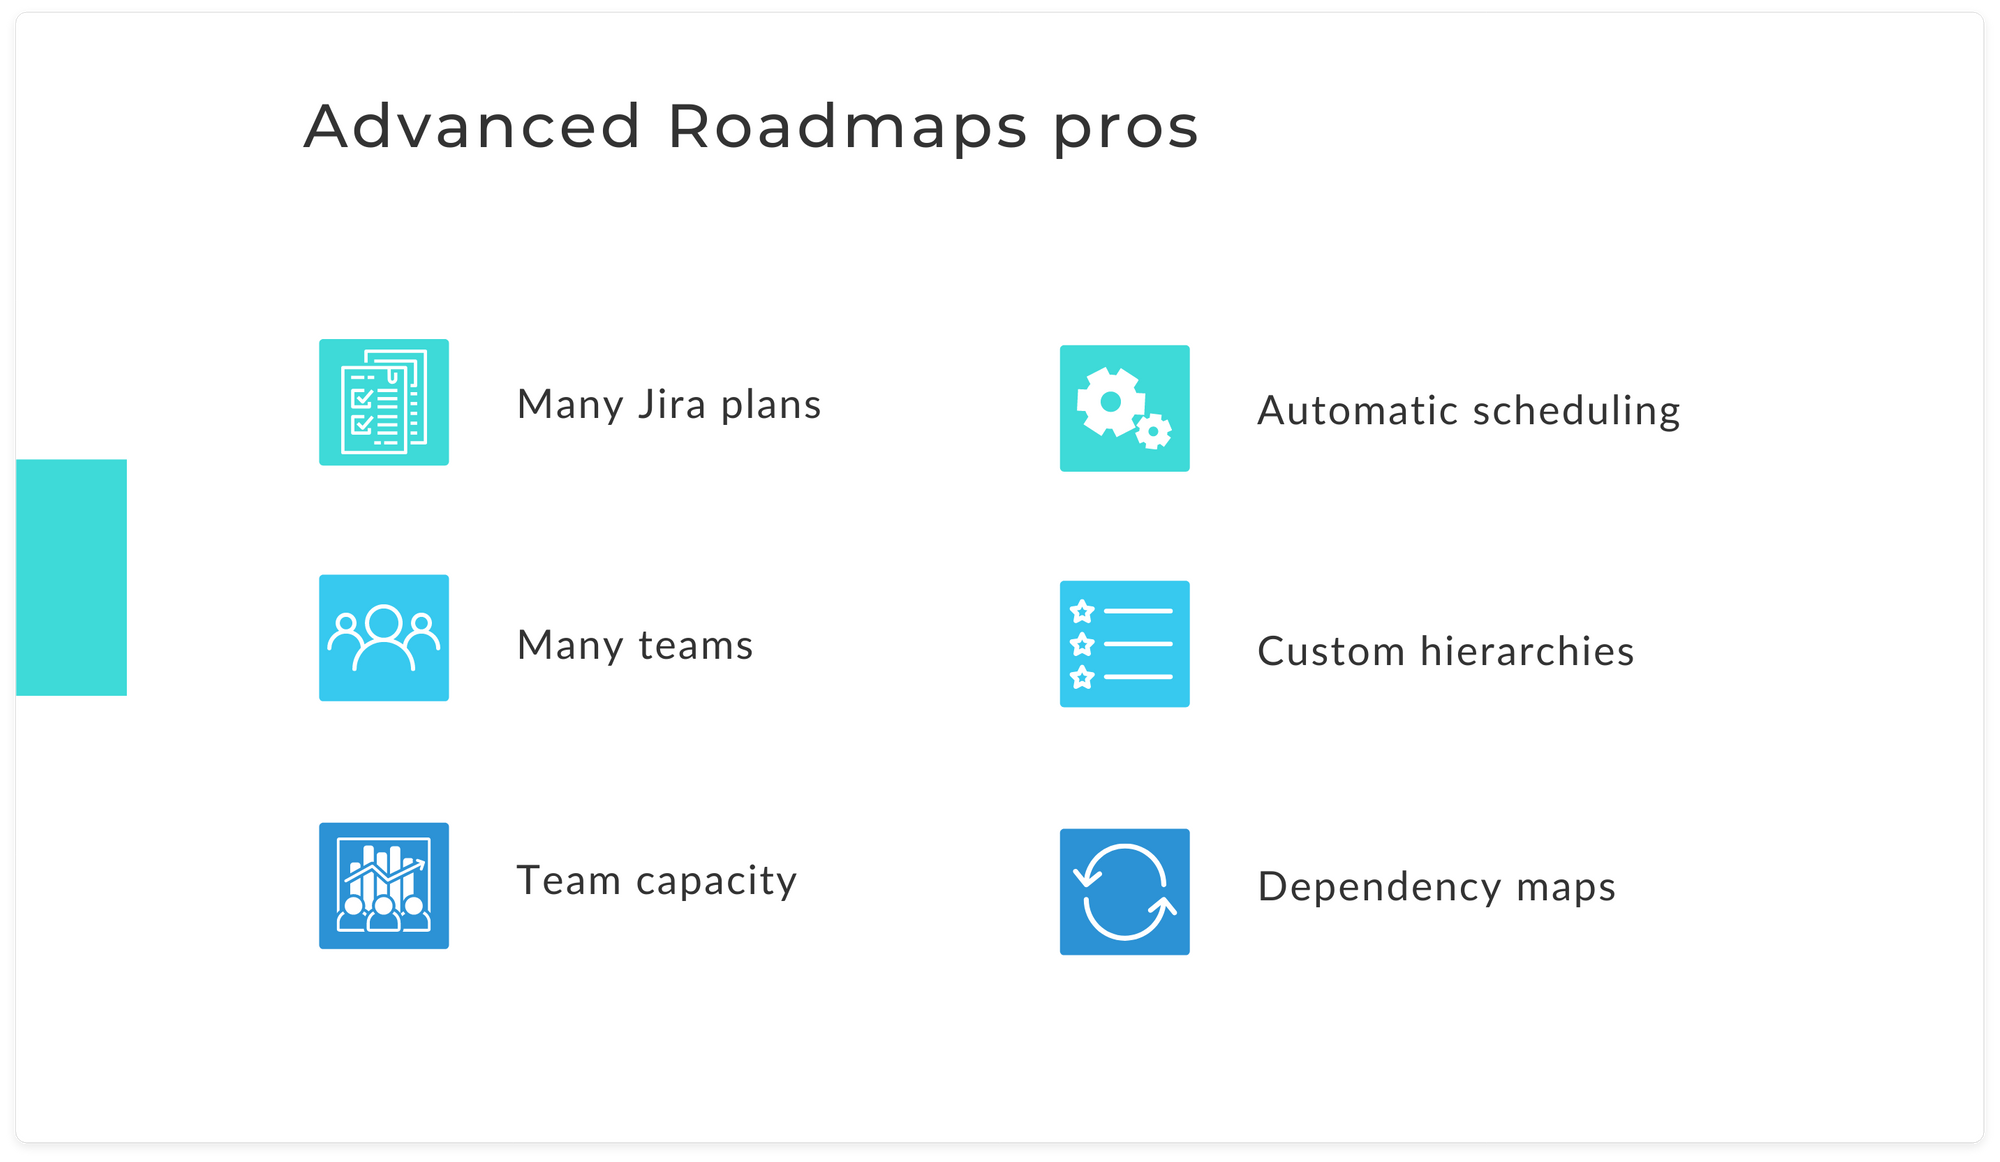 The pros of using Advanced Roadmaps for Jira